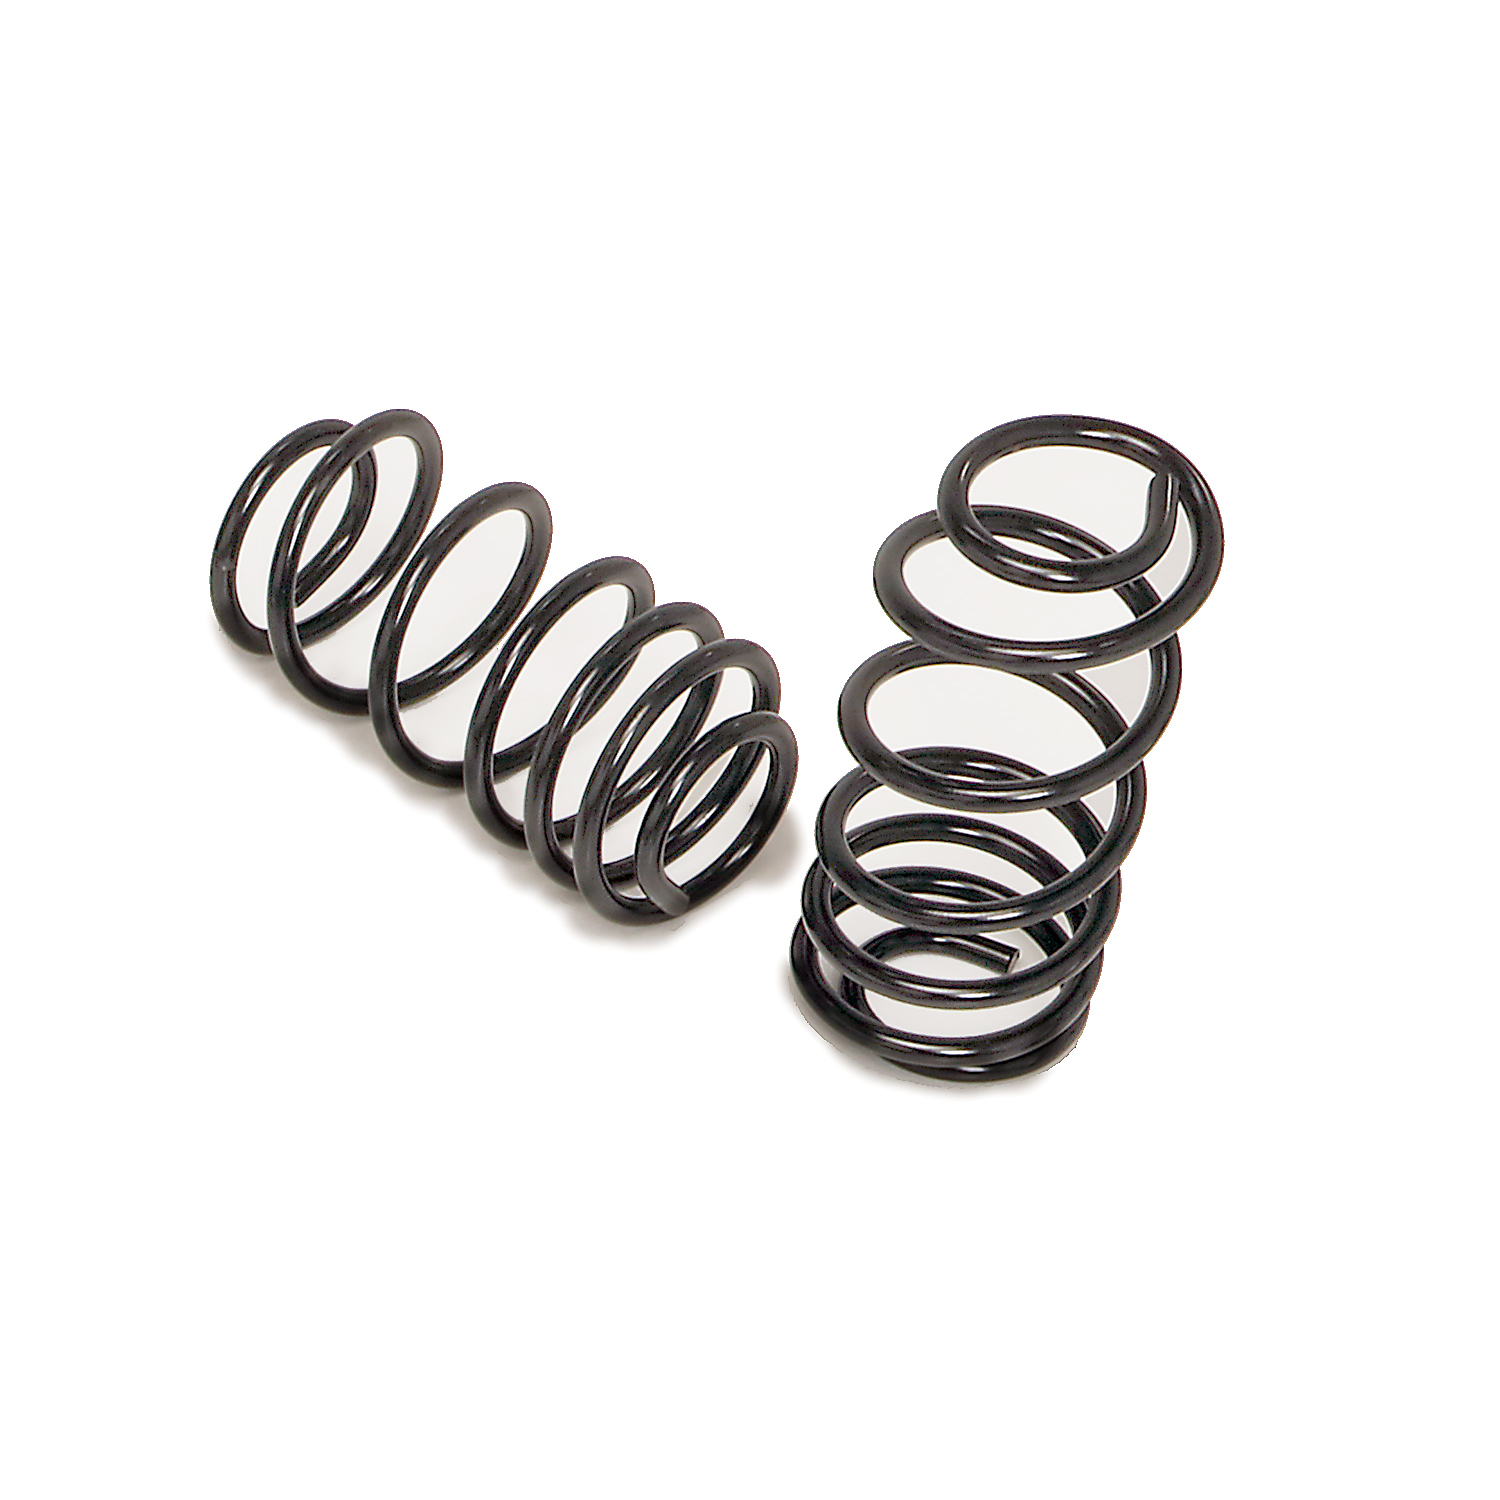 1965 – 1966 Ford Galaxie Rear Coil Springs By Hotchkis